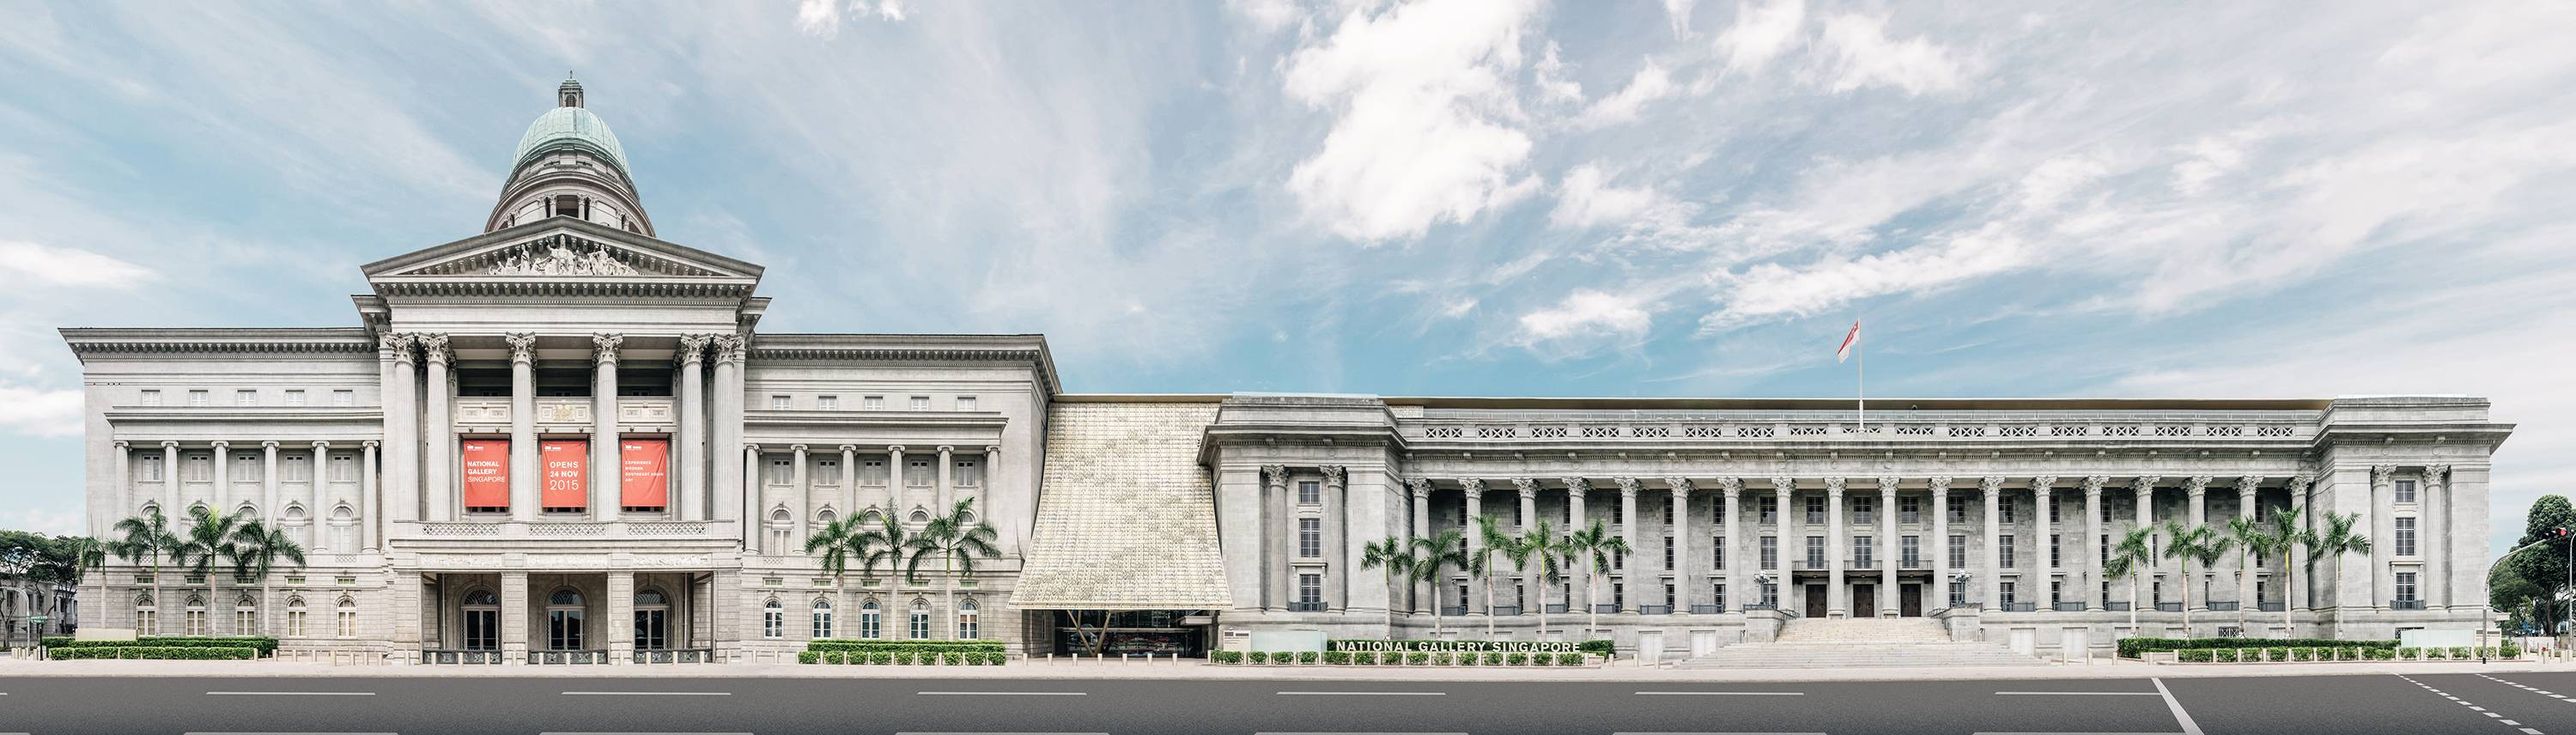 National Gallery Singapore - Monuments of Singapore